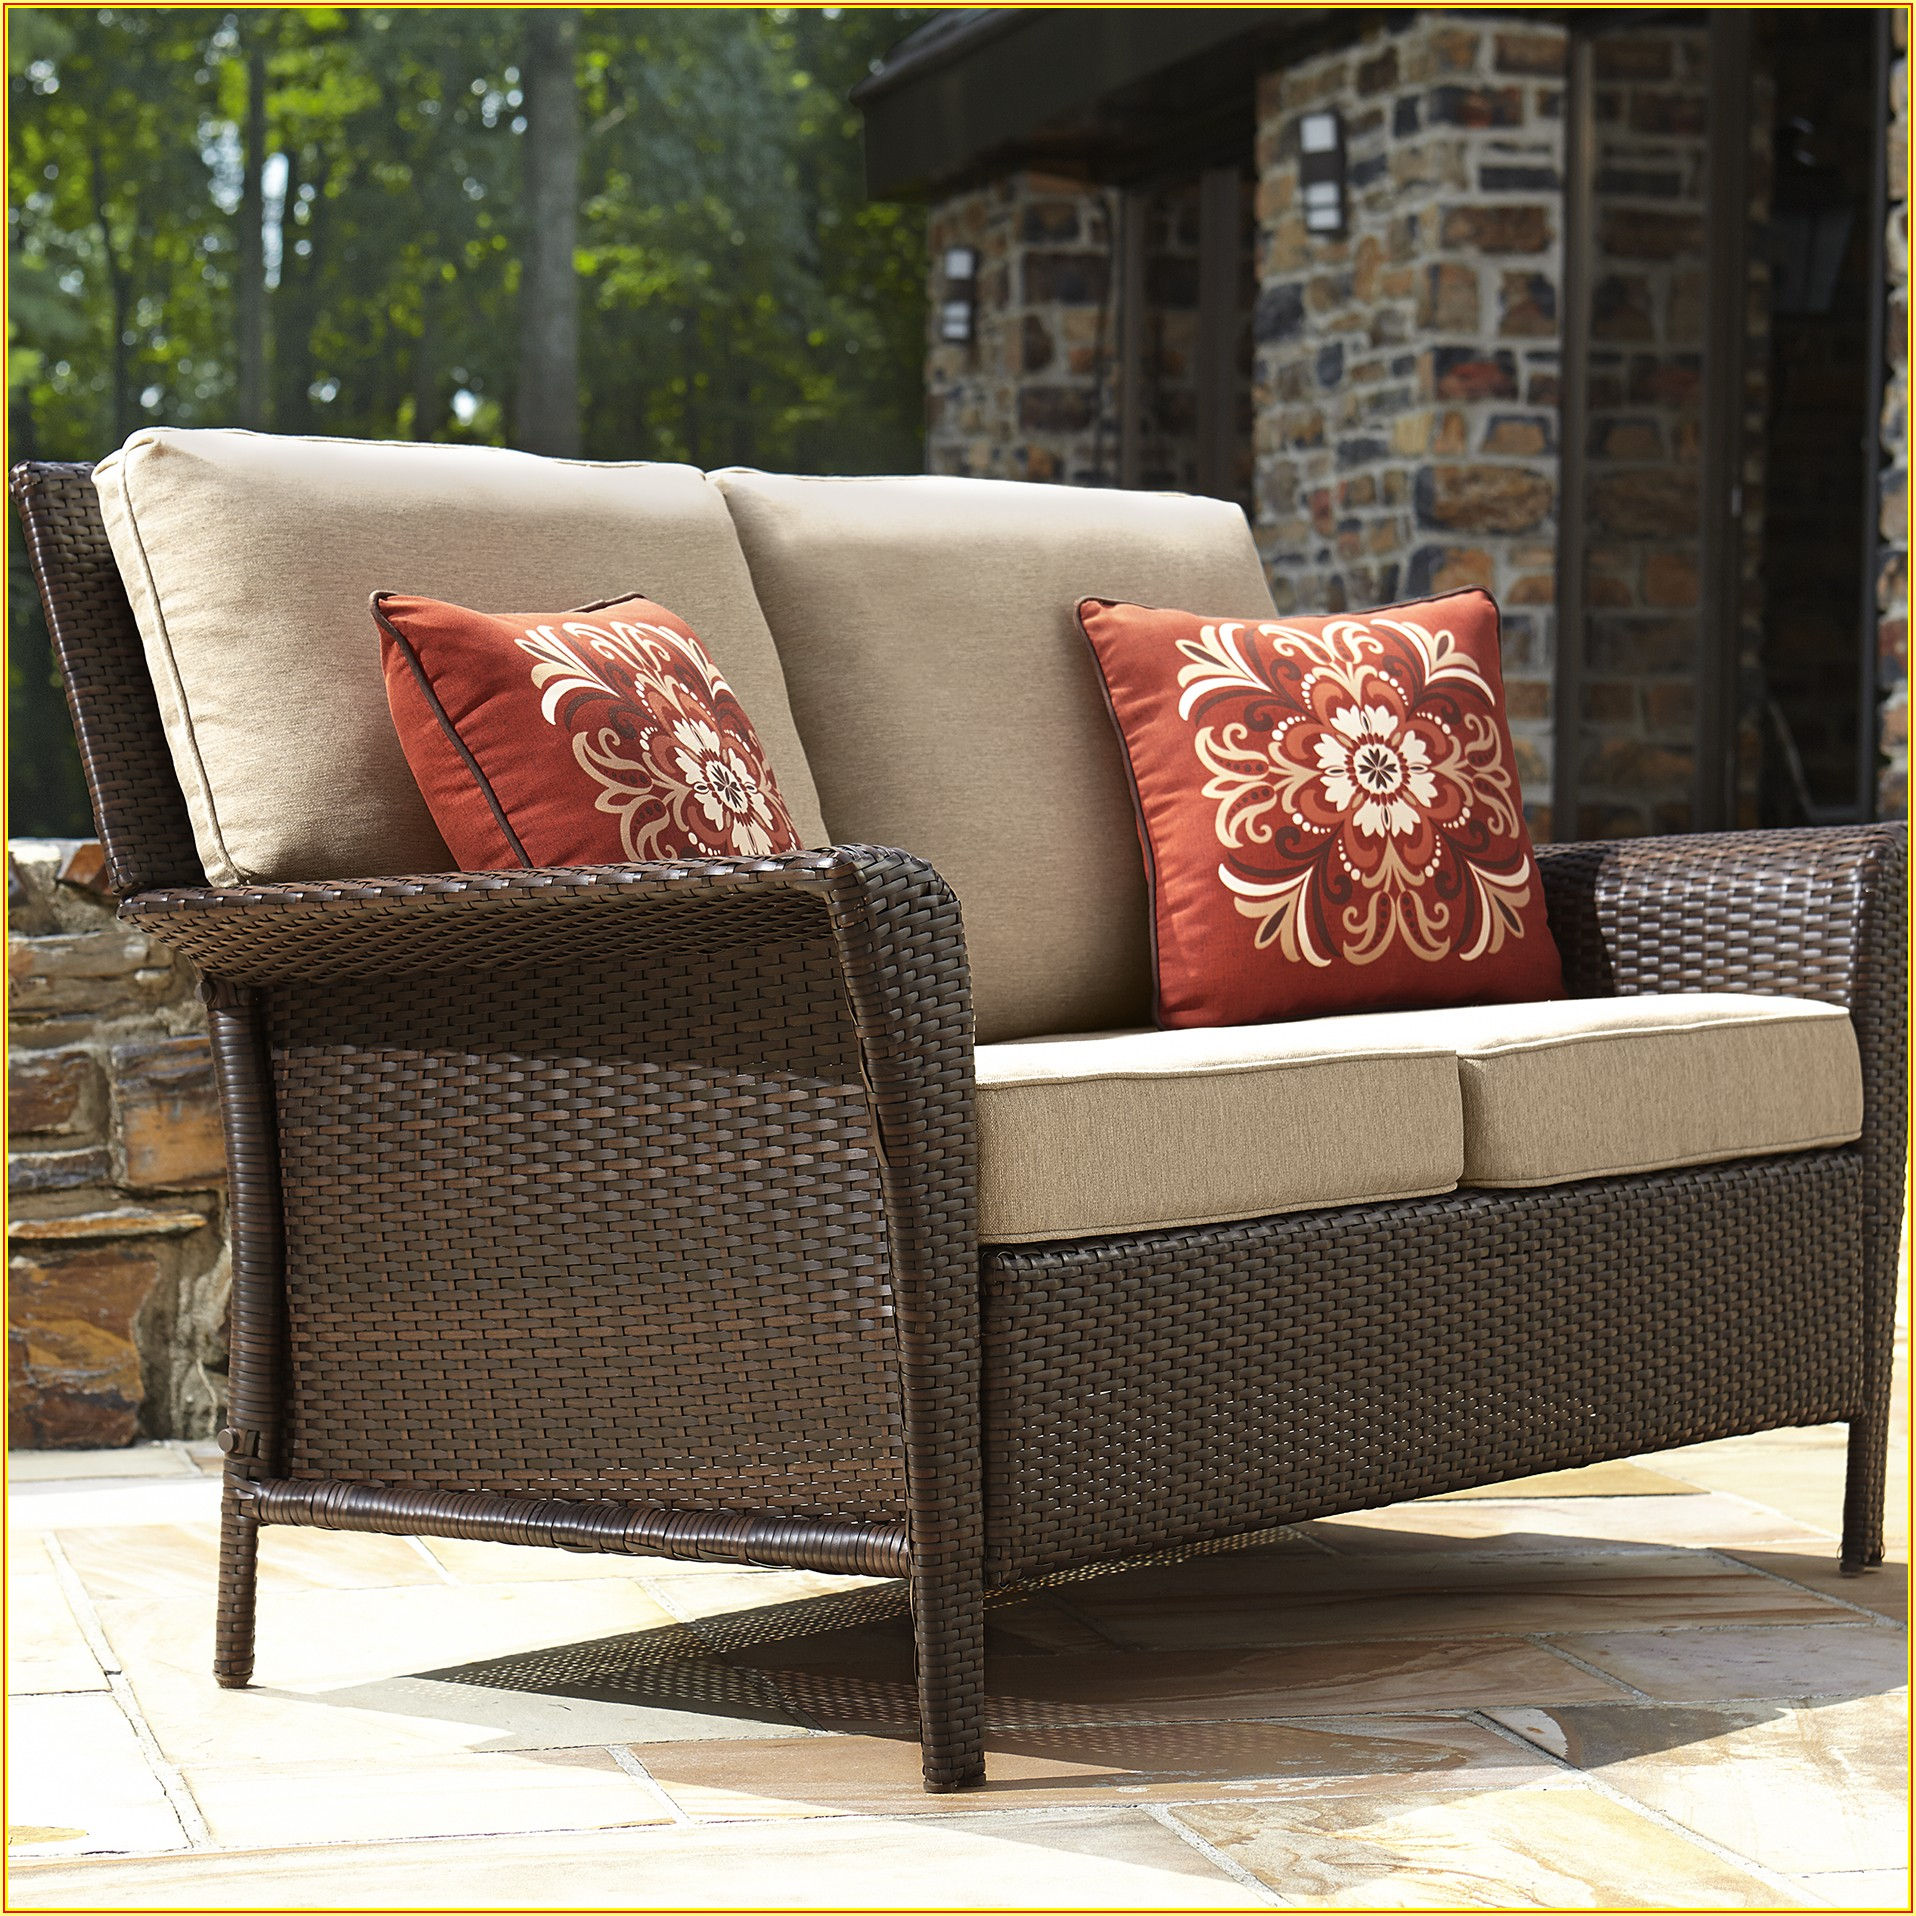 Ty Pennington Patio Furniture Cushions